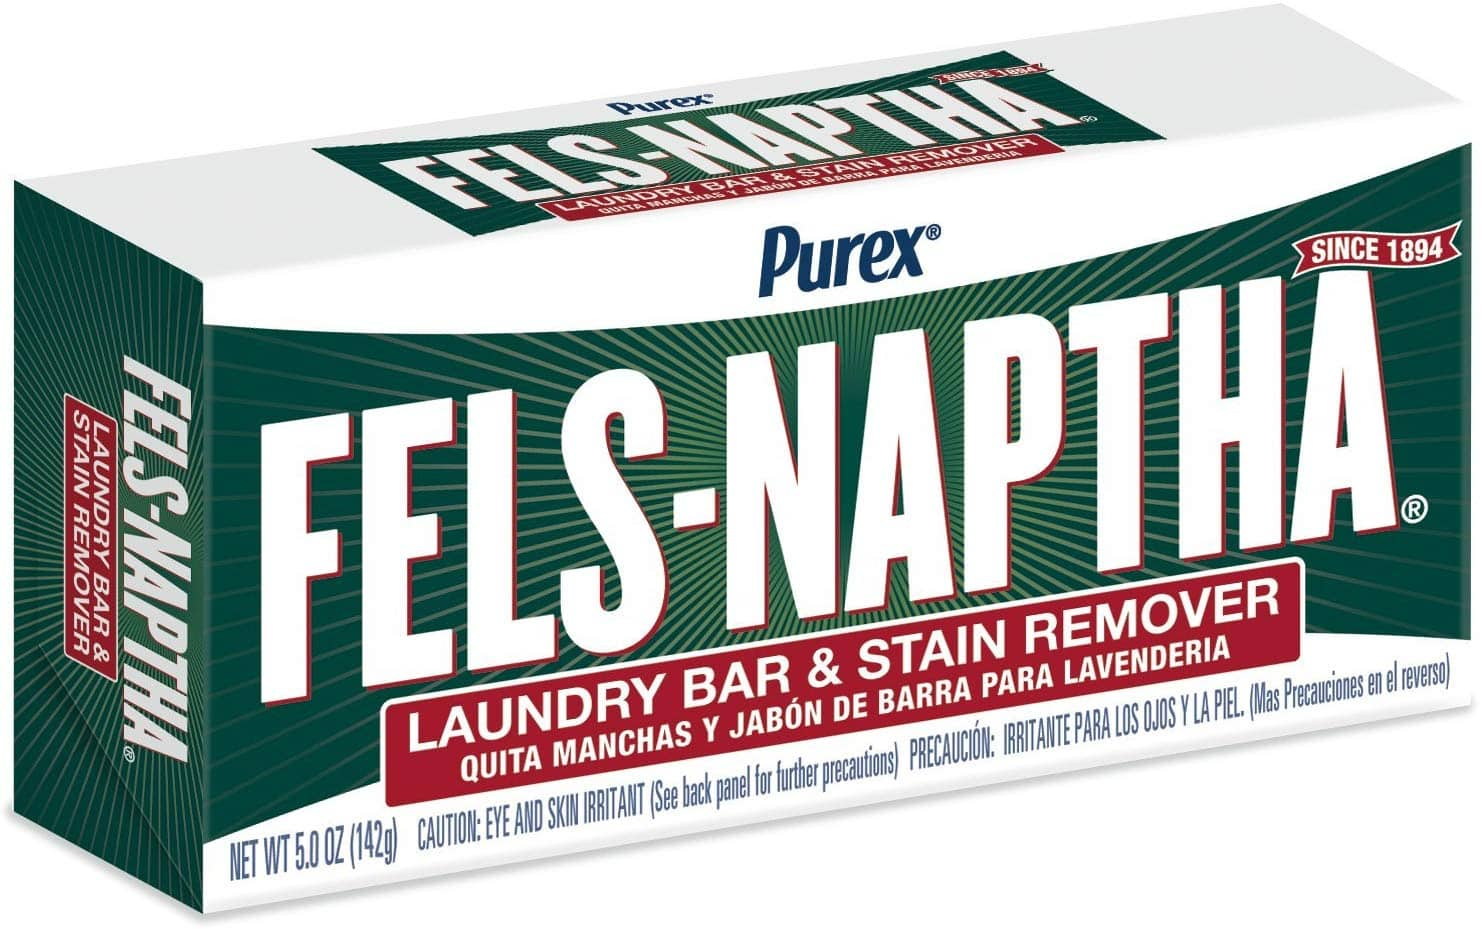 5oz Fels Naptha Laundry Bar and Stain Remover $0.84 w/ S&S + Free S&H